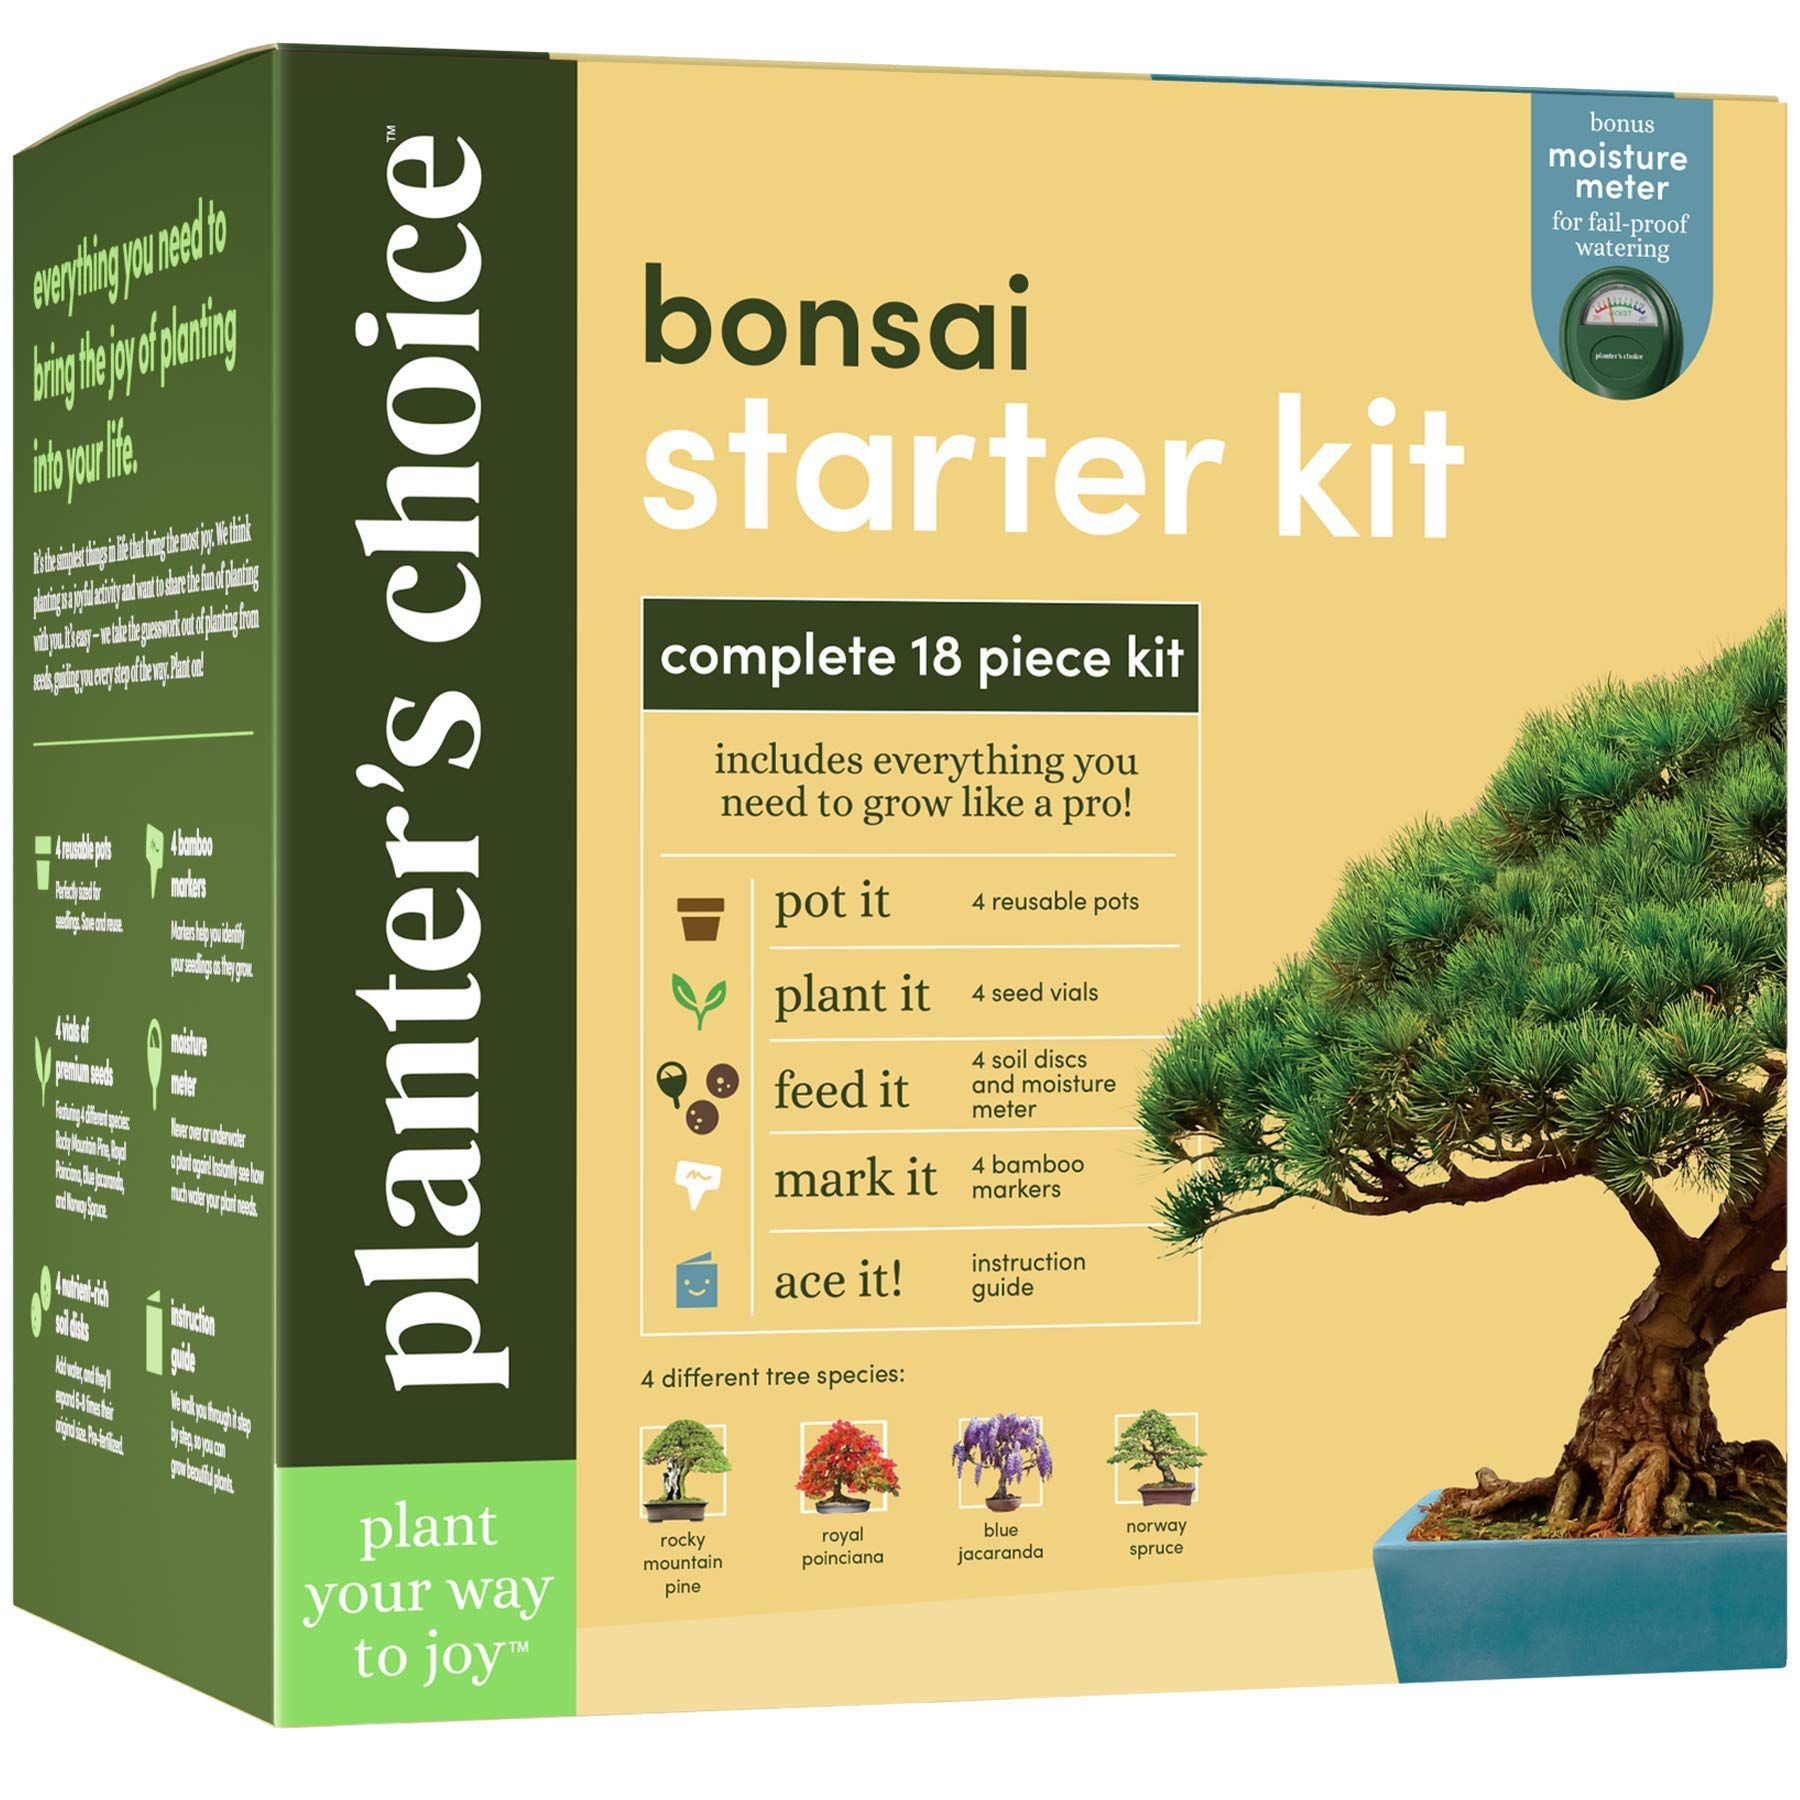 Bonsai Starter Kit The Complete Growing Kit To Easily Grow 4 Bonsai Trees From Seed Comprehensive Guide Andamp In 2020 Indoor Bonsai Tree Bonsai Tree Bonzai Tree